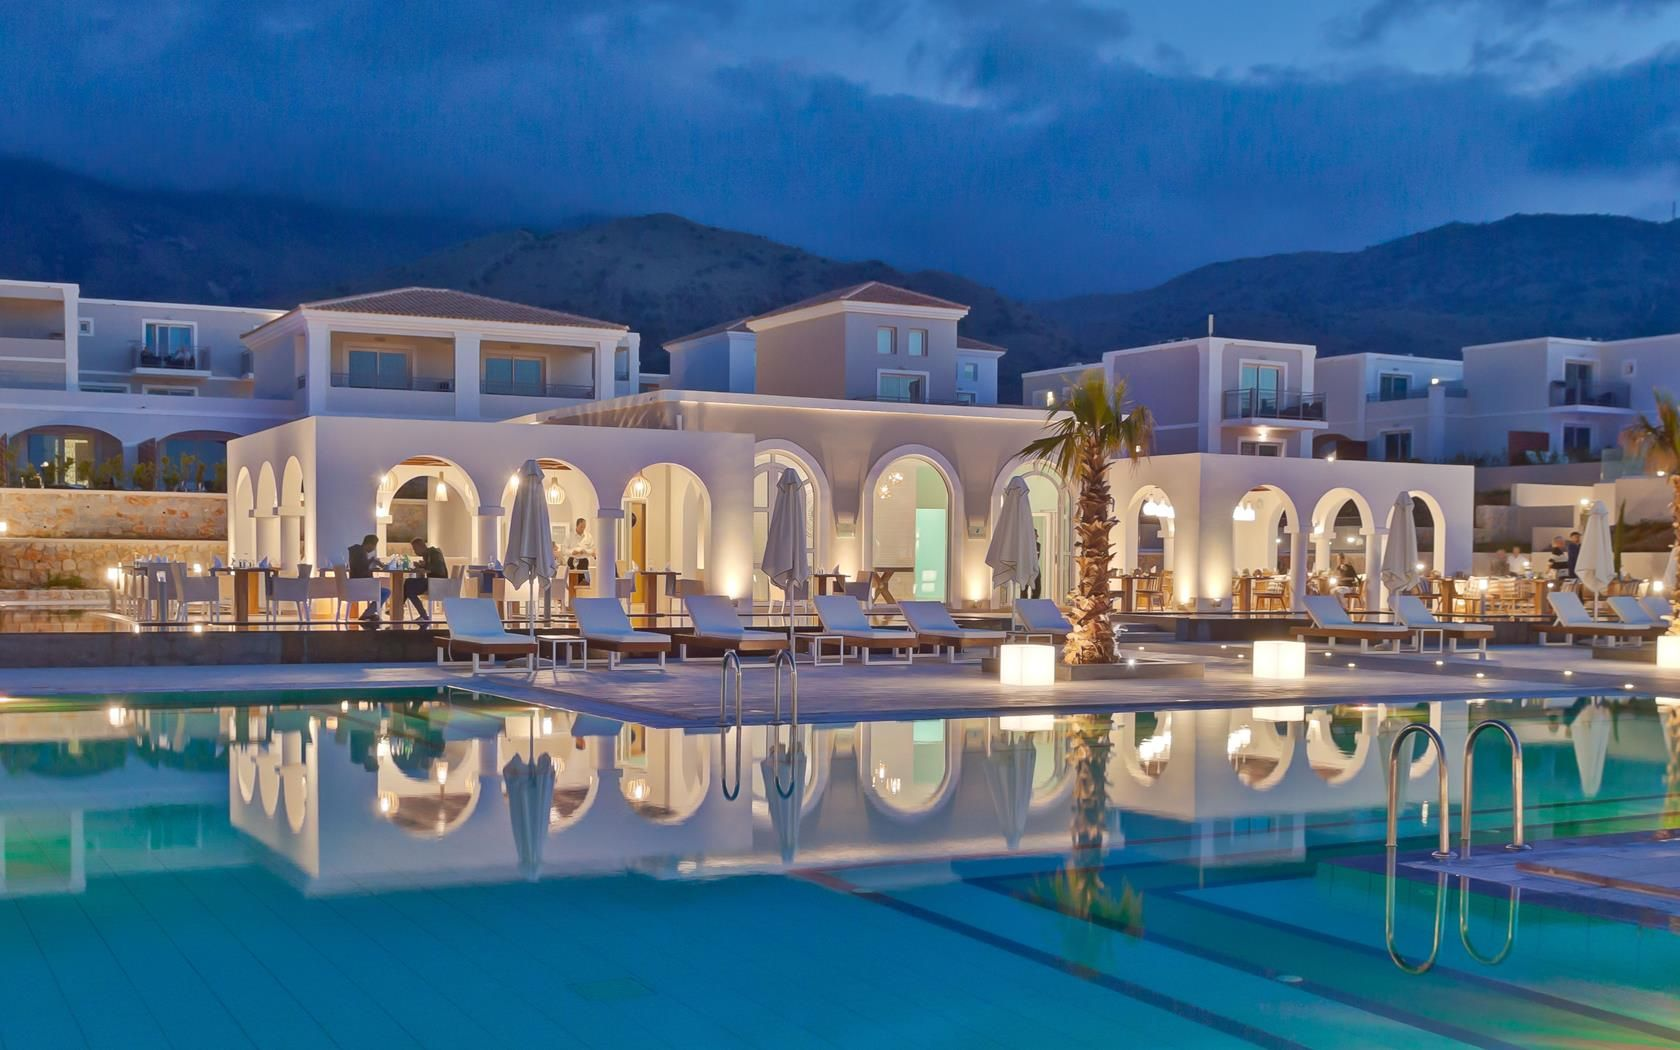 Anemos Luxury Grand Resort Is A Brand New 5 Star Suites And Spa Hotel Located Next To The Village Of Georgioupolis Chania At North Western Part